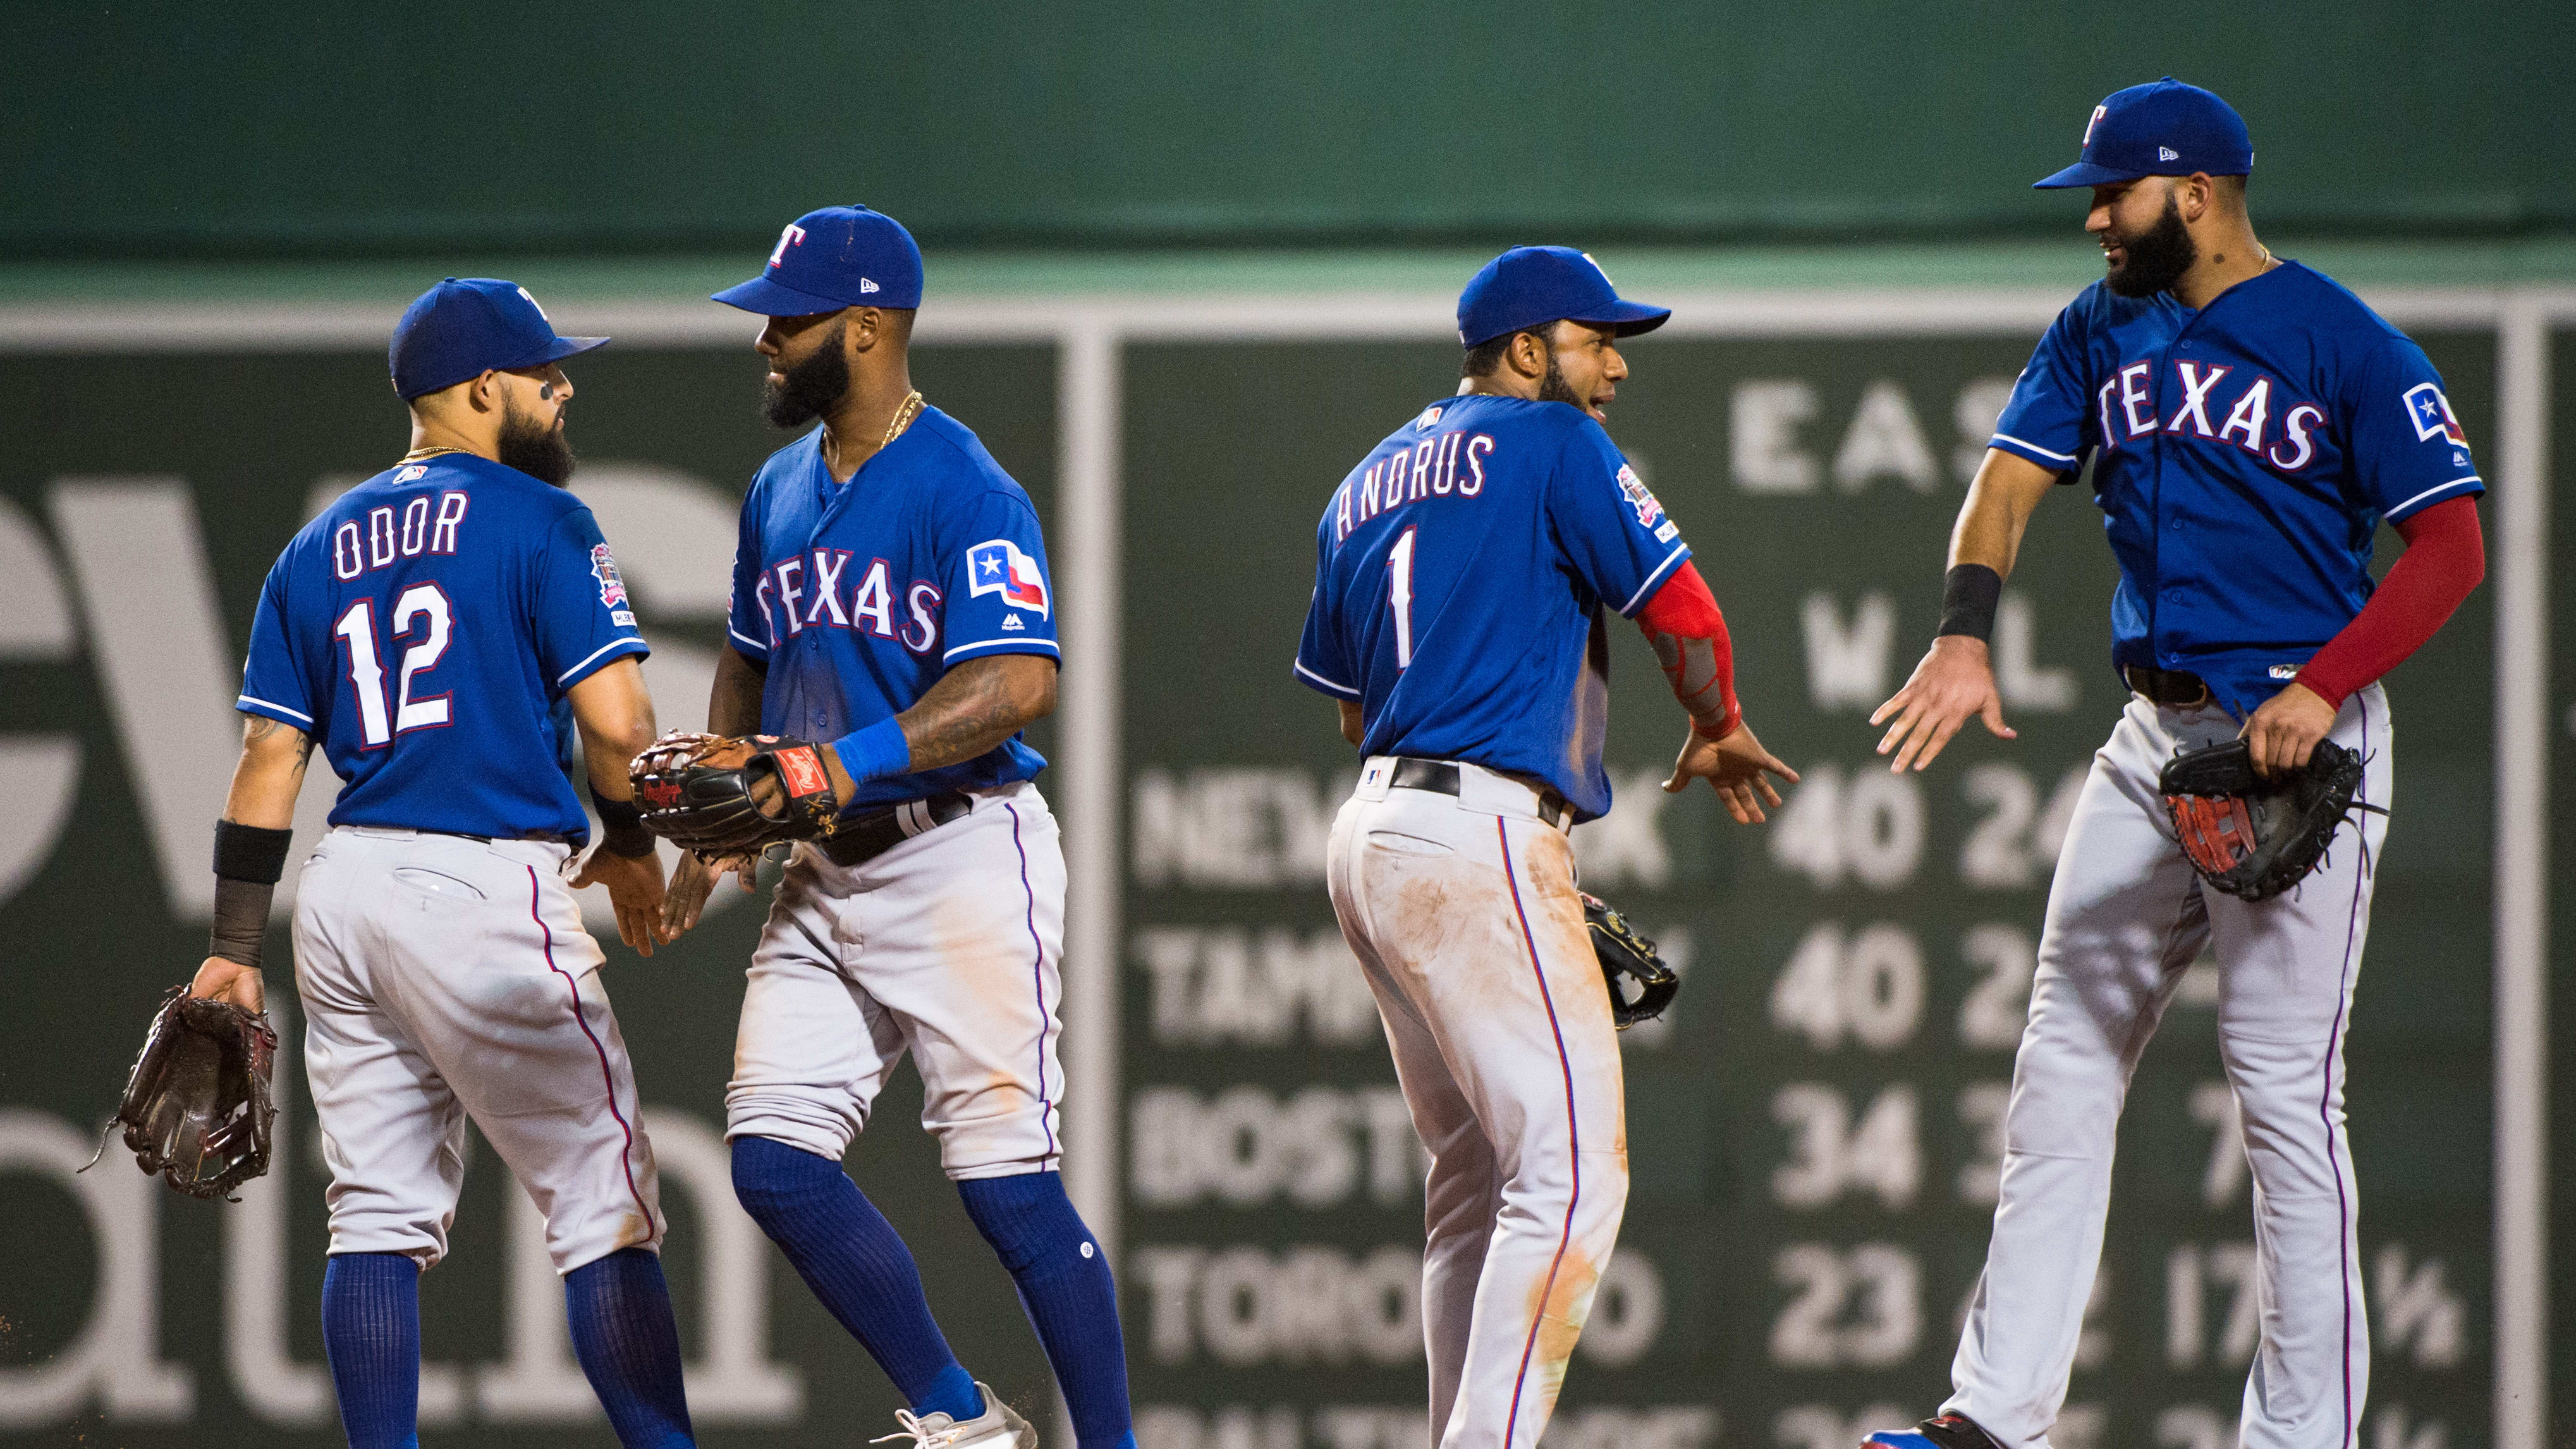 BOSTON, MA - JUNE 10: Elvis Andrus #1 and Rougned Odor #12 of the Texas Rangers celebrate with teammates after beating the Boston Red Sox at Fenway Park on June 10, 2019 in Boston, Massachusetts. (Photo by Kathryn Riley /Getty Images)